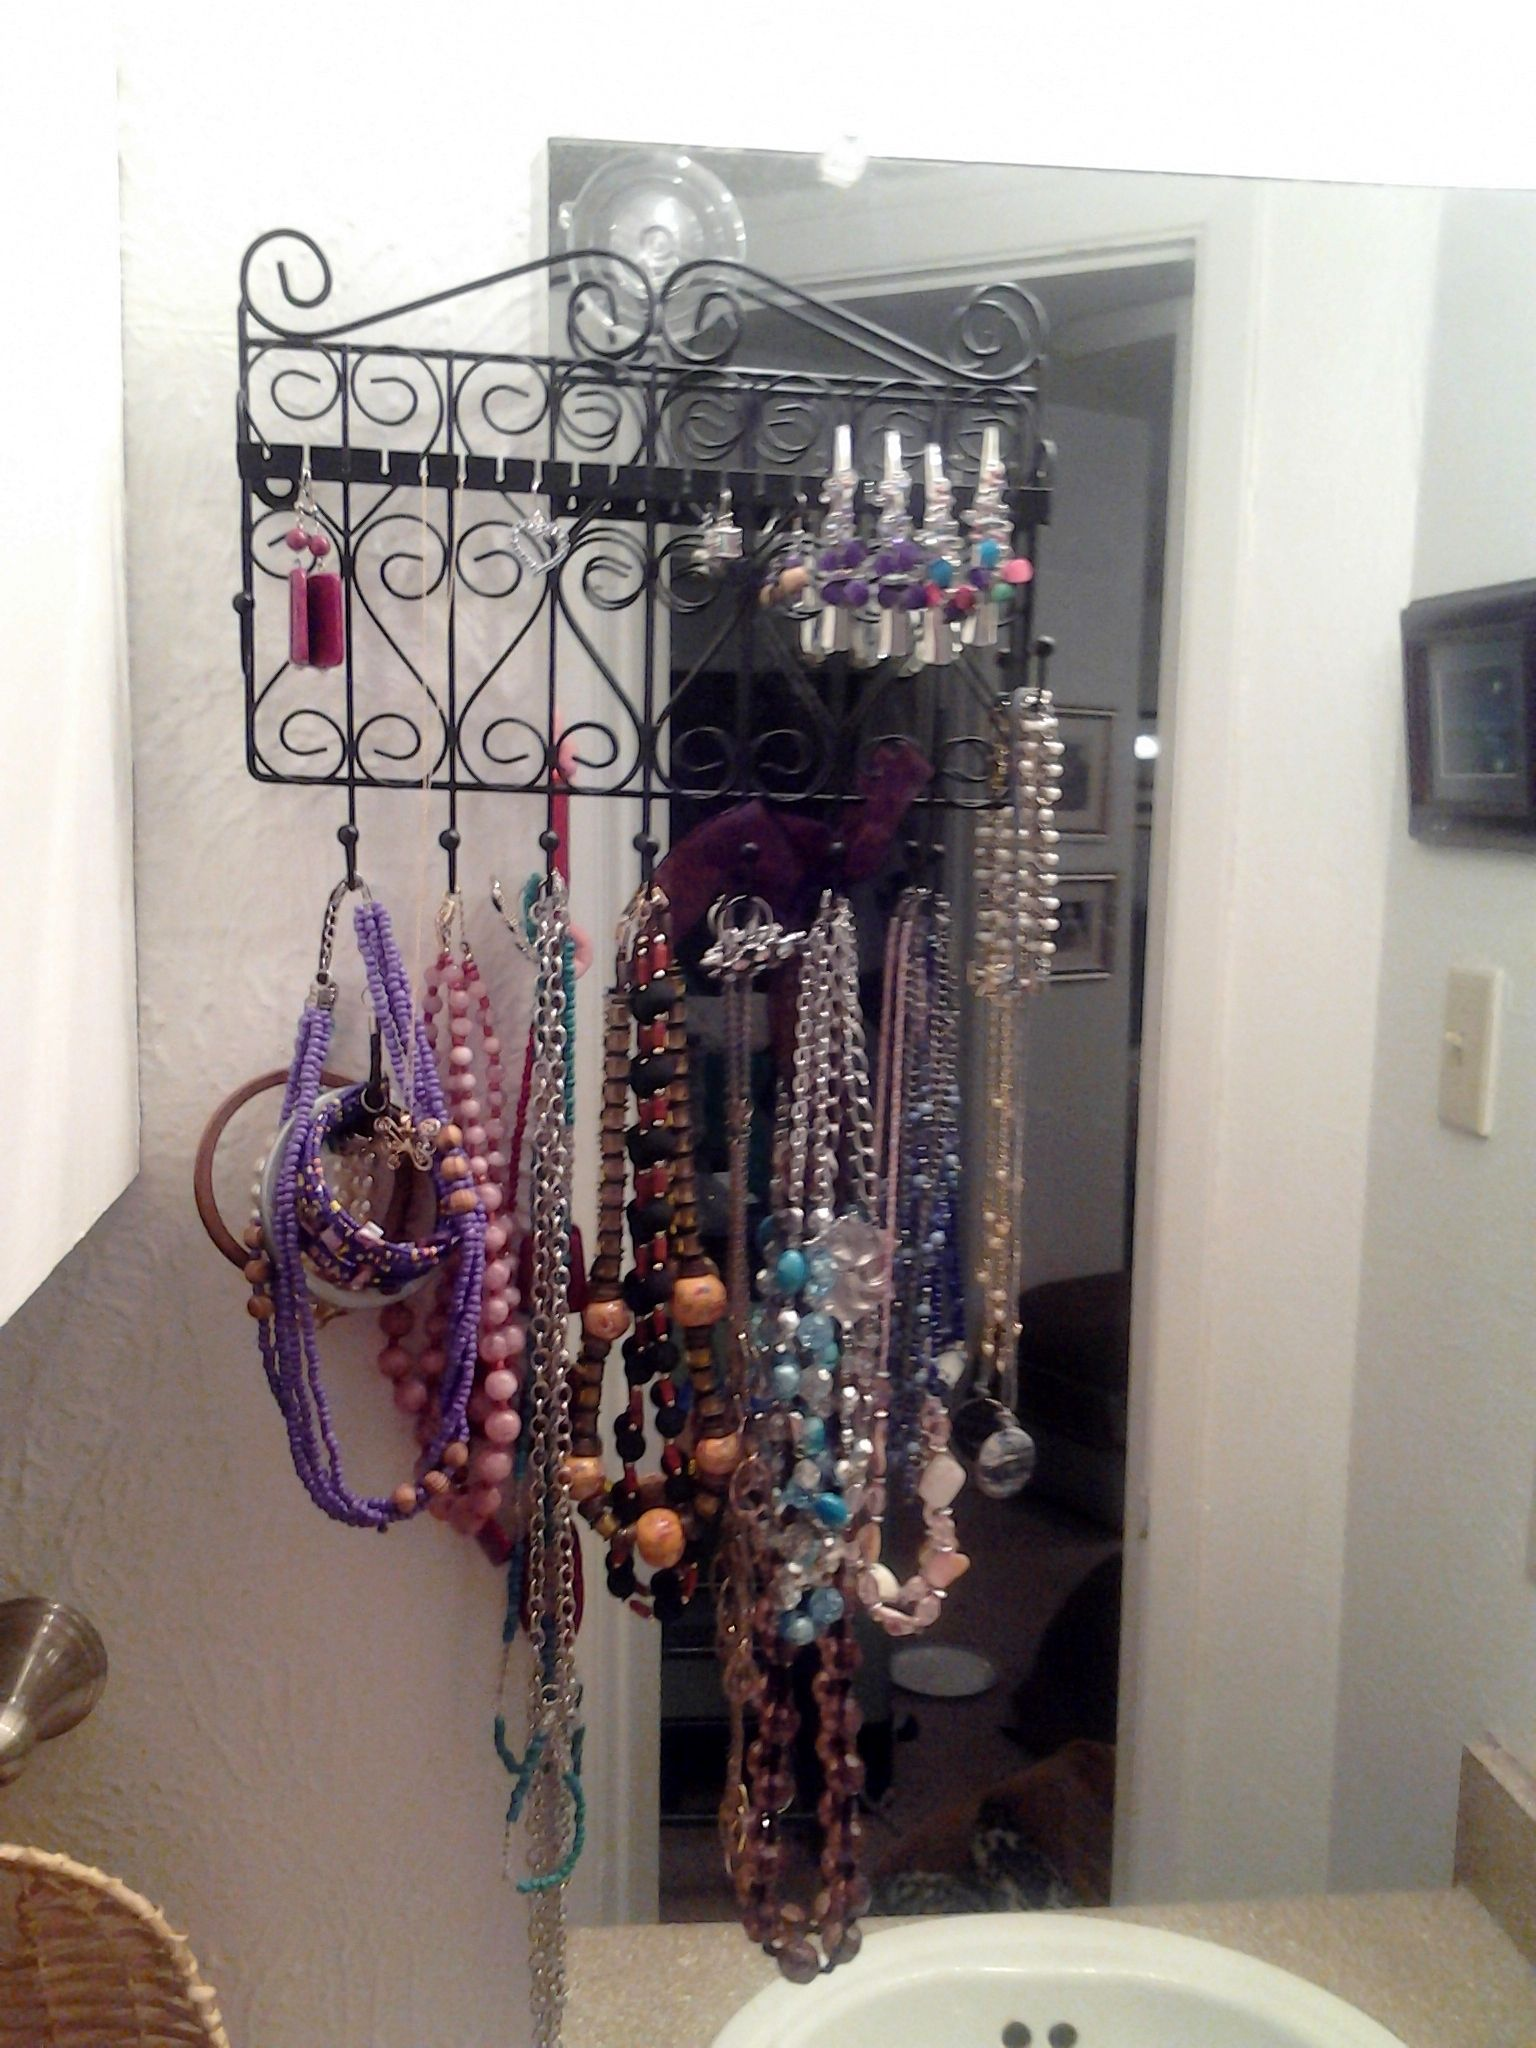 A little more detail on the jewelry organizer I searched high and